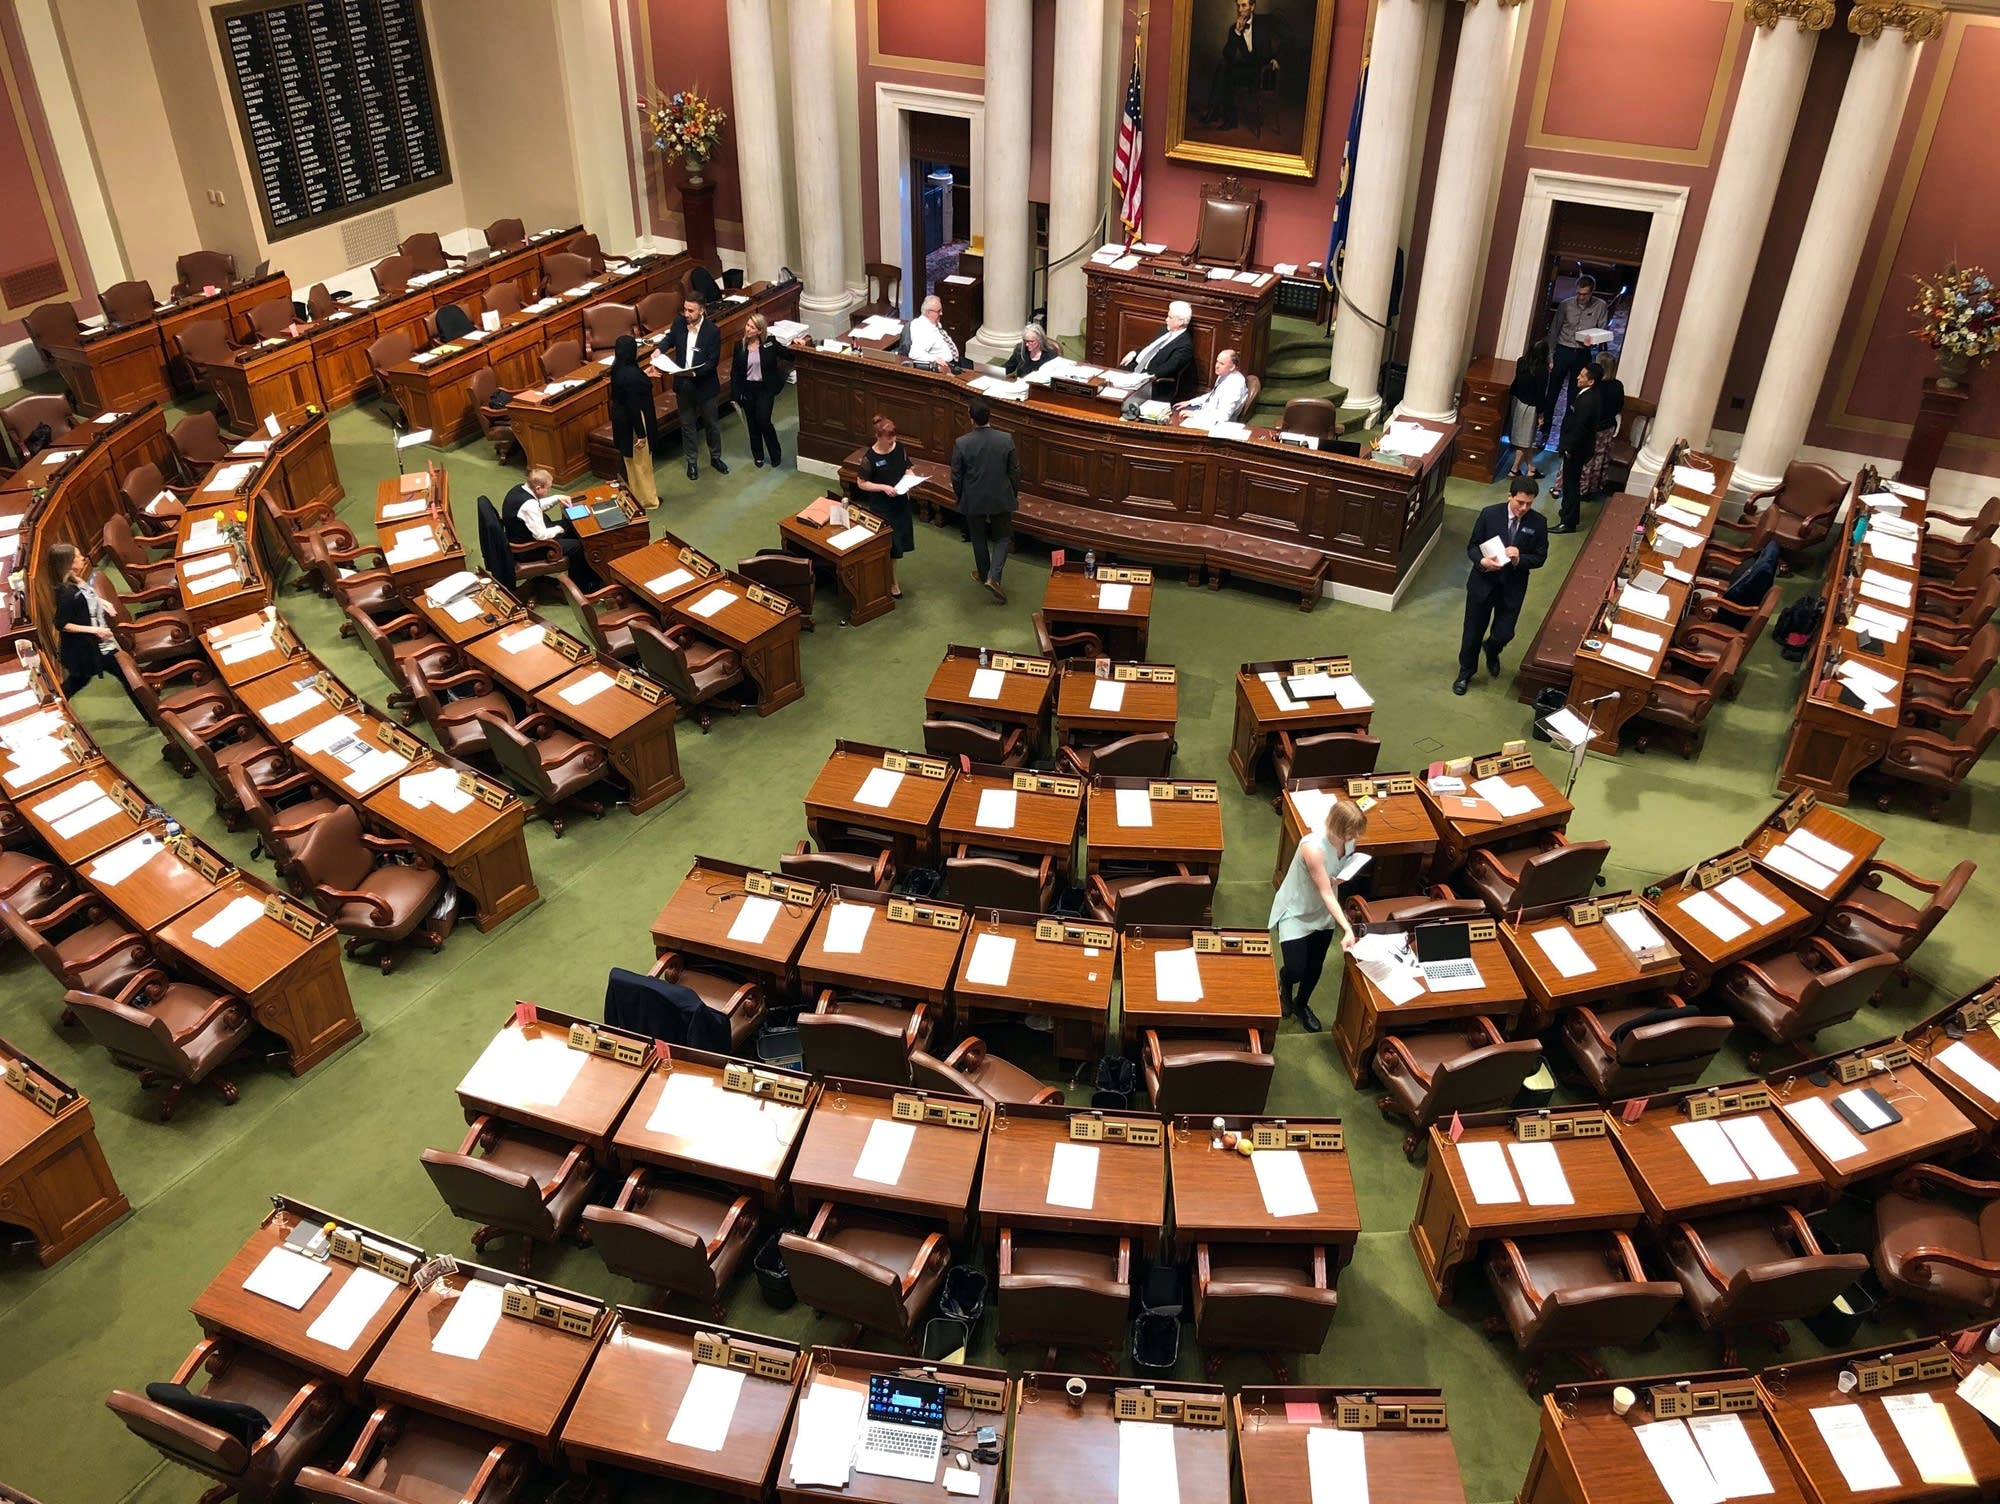 The Minnesota House chamber at the State Capitol in St. Paul.